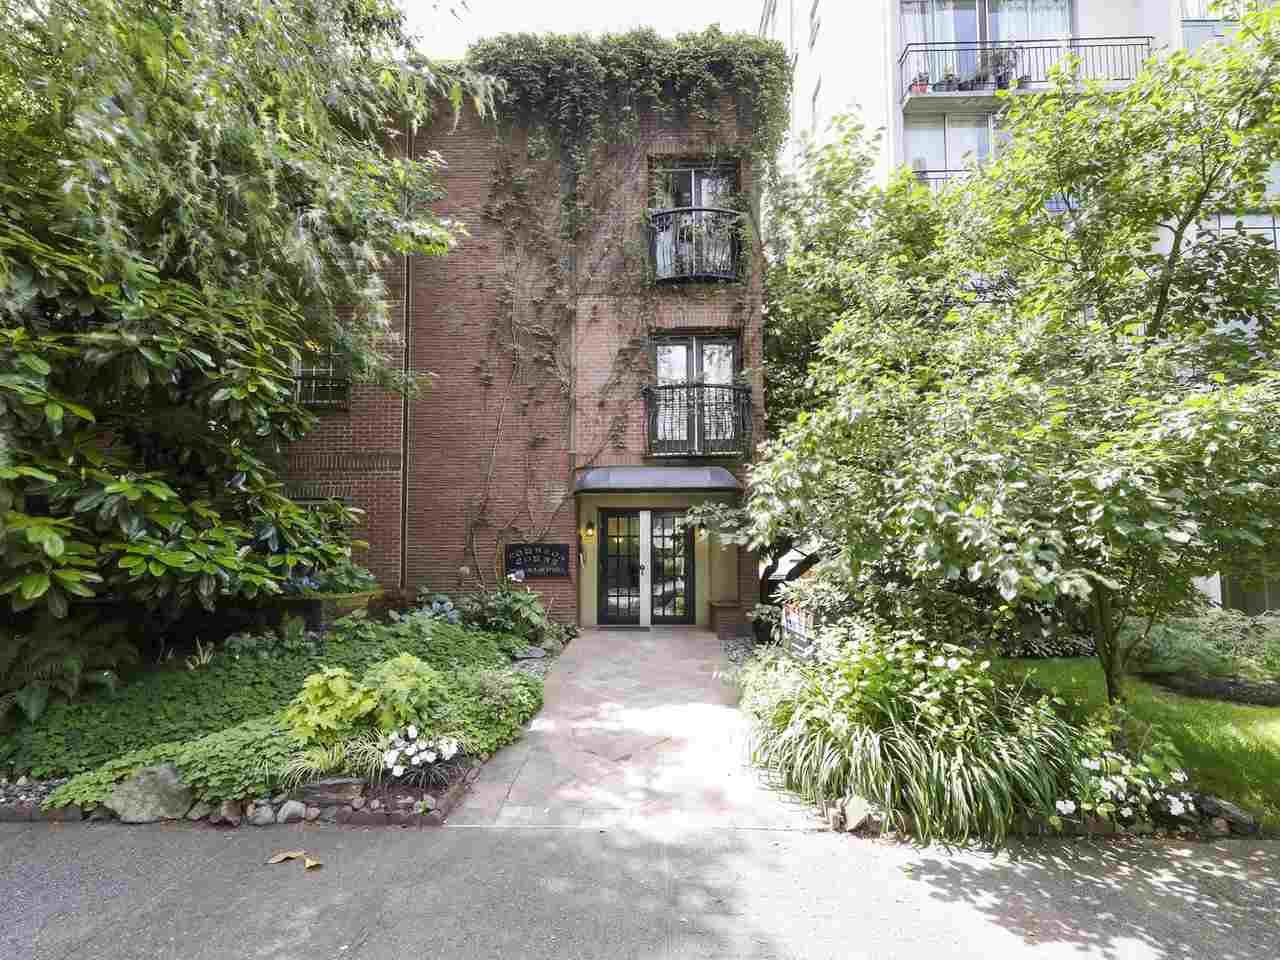 """Main Photo: 213 1940 BARCLAY Street in Vancouver: West End VW Condo for sale in """"Bourbon Court"""" (Vancouver West)  : MLS®# R2473241"""